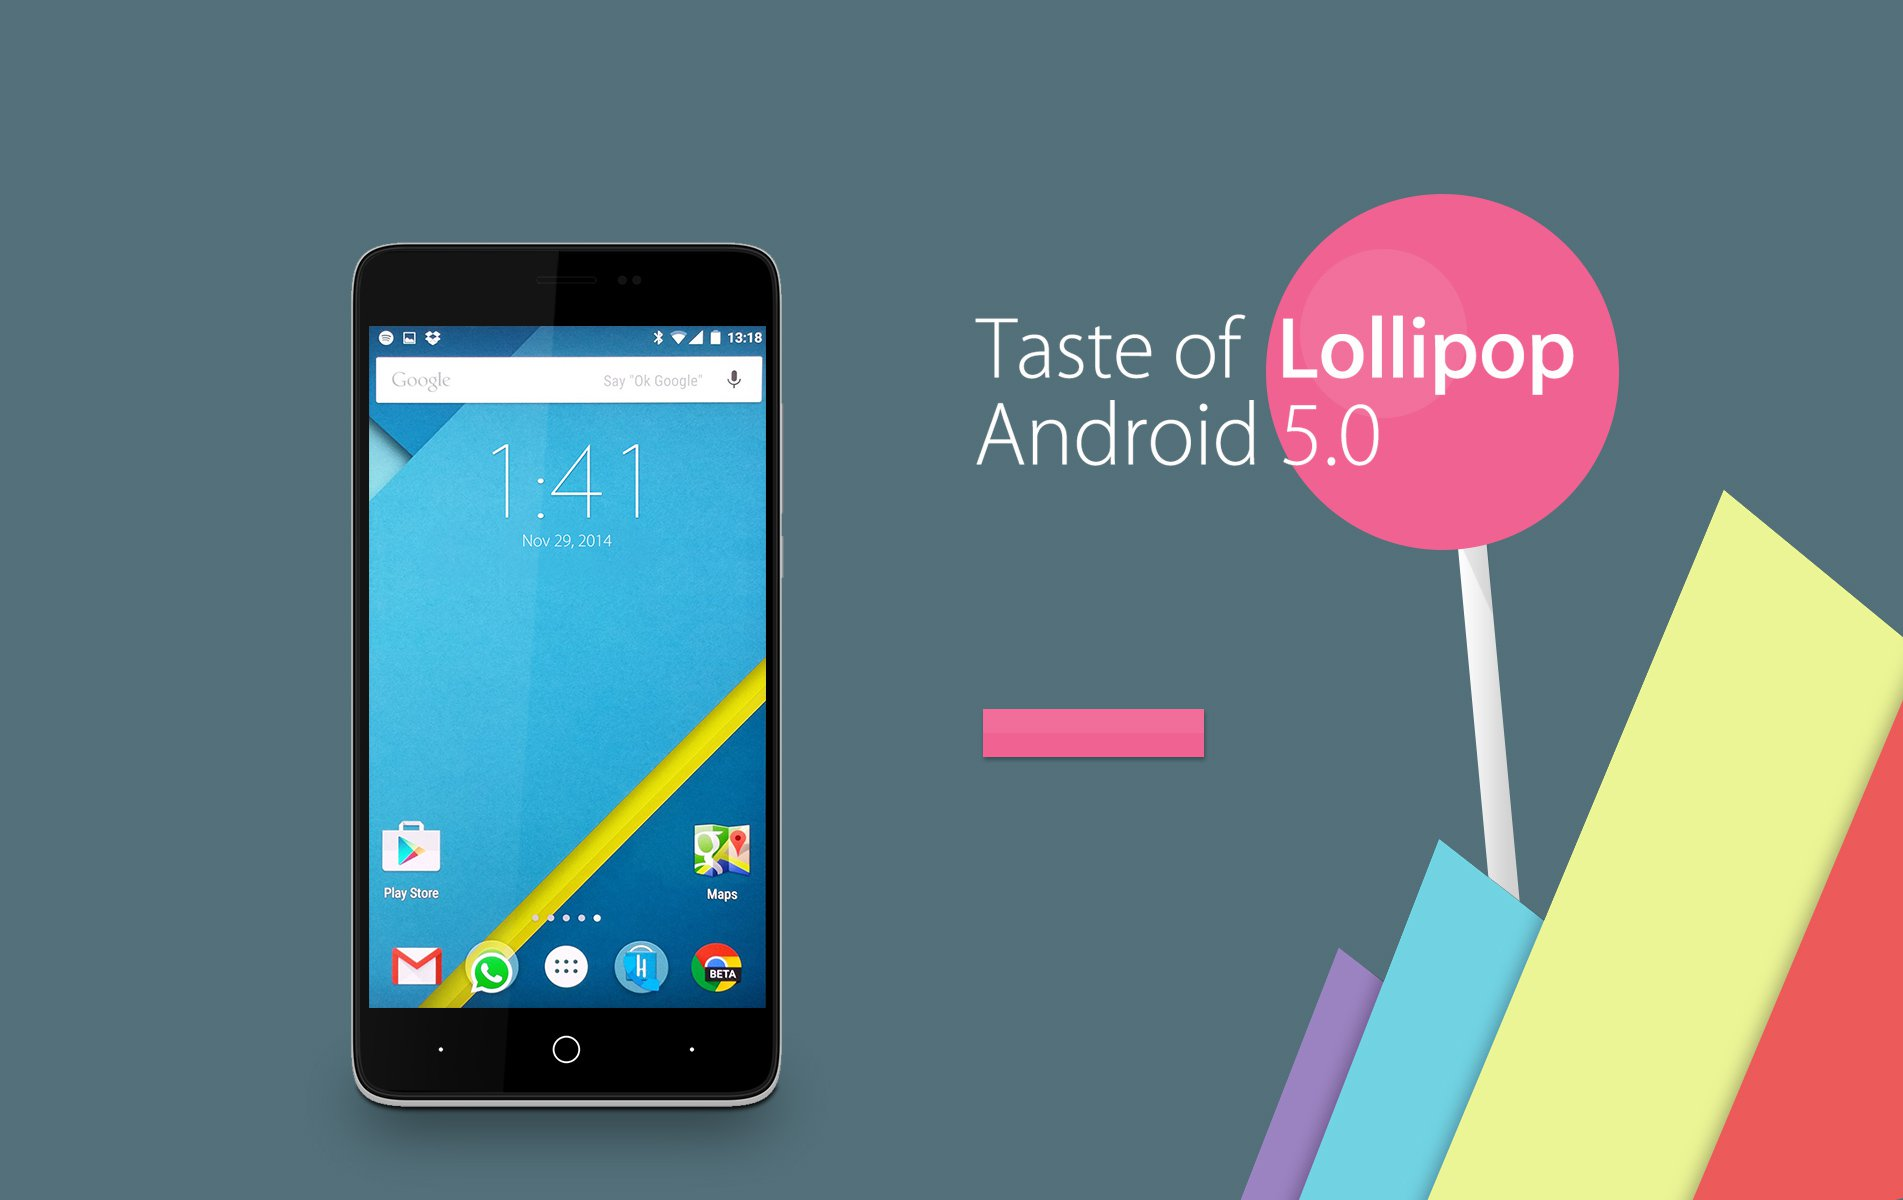 Elephone P6000 Runs Android Lollipop Costs $170